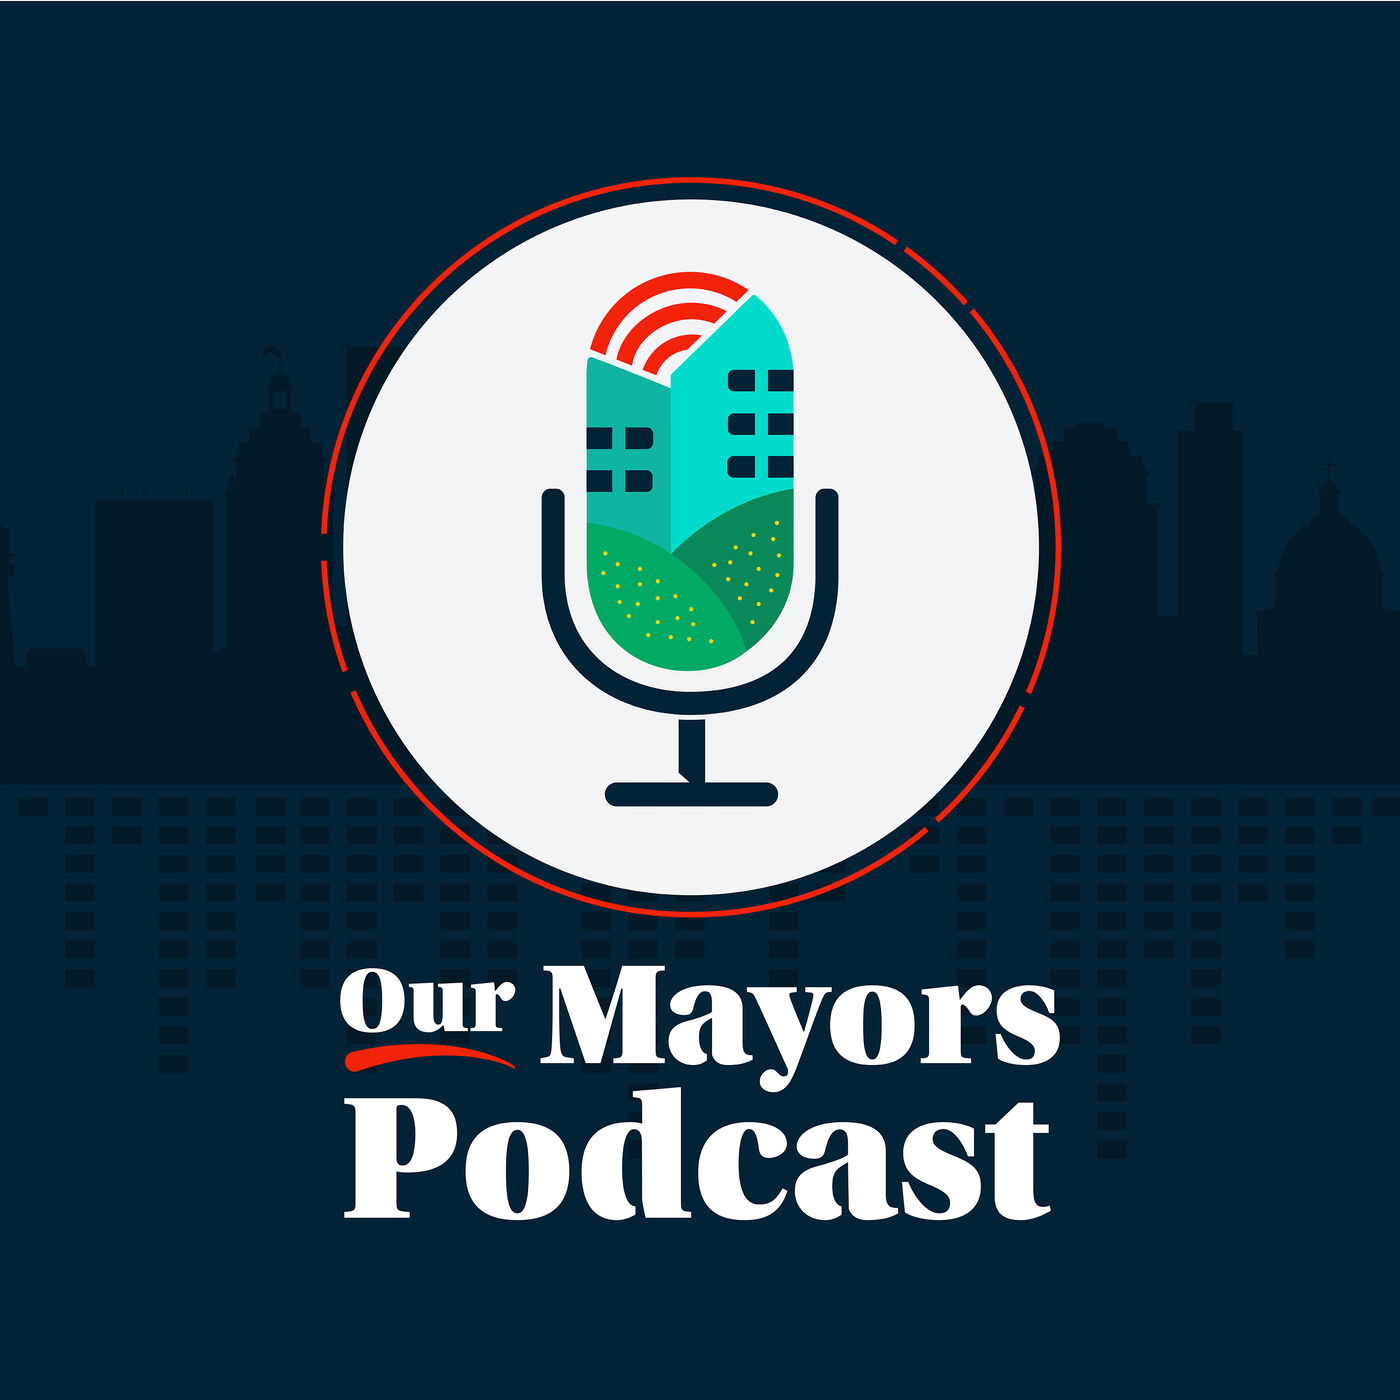 Our Mayors Podcast Trailer